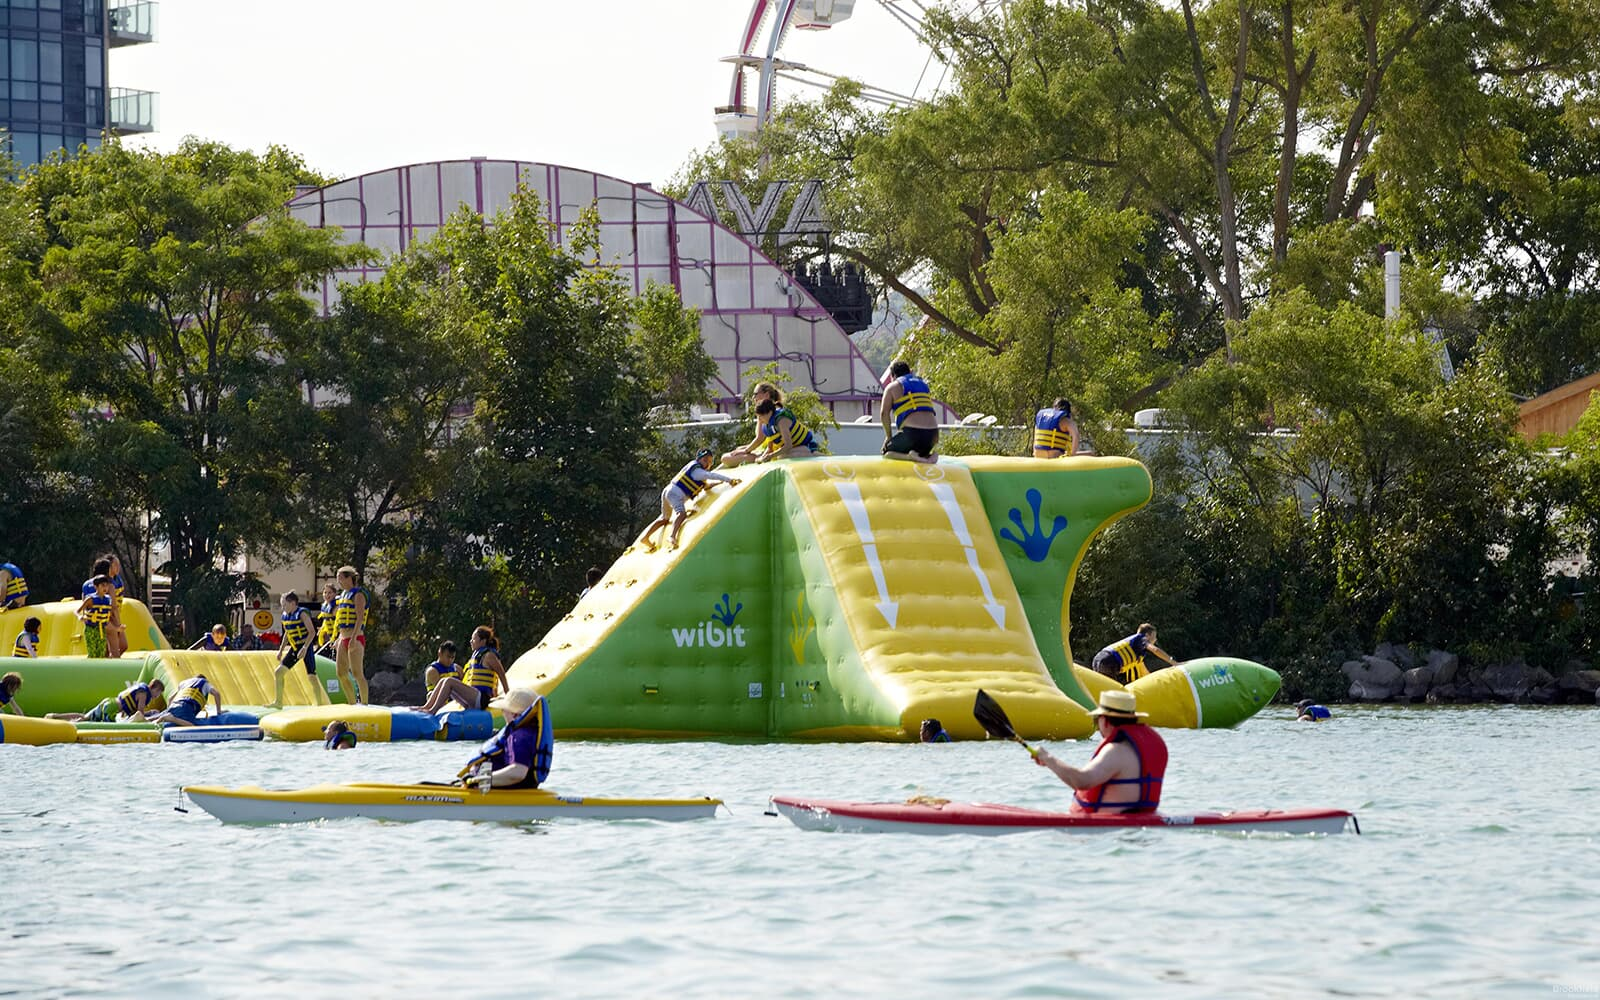 Water park in Baxter, ON